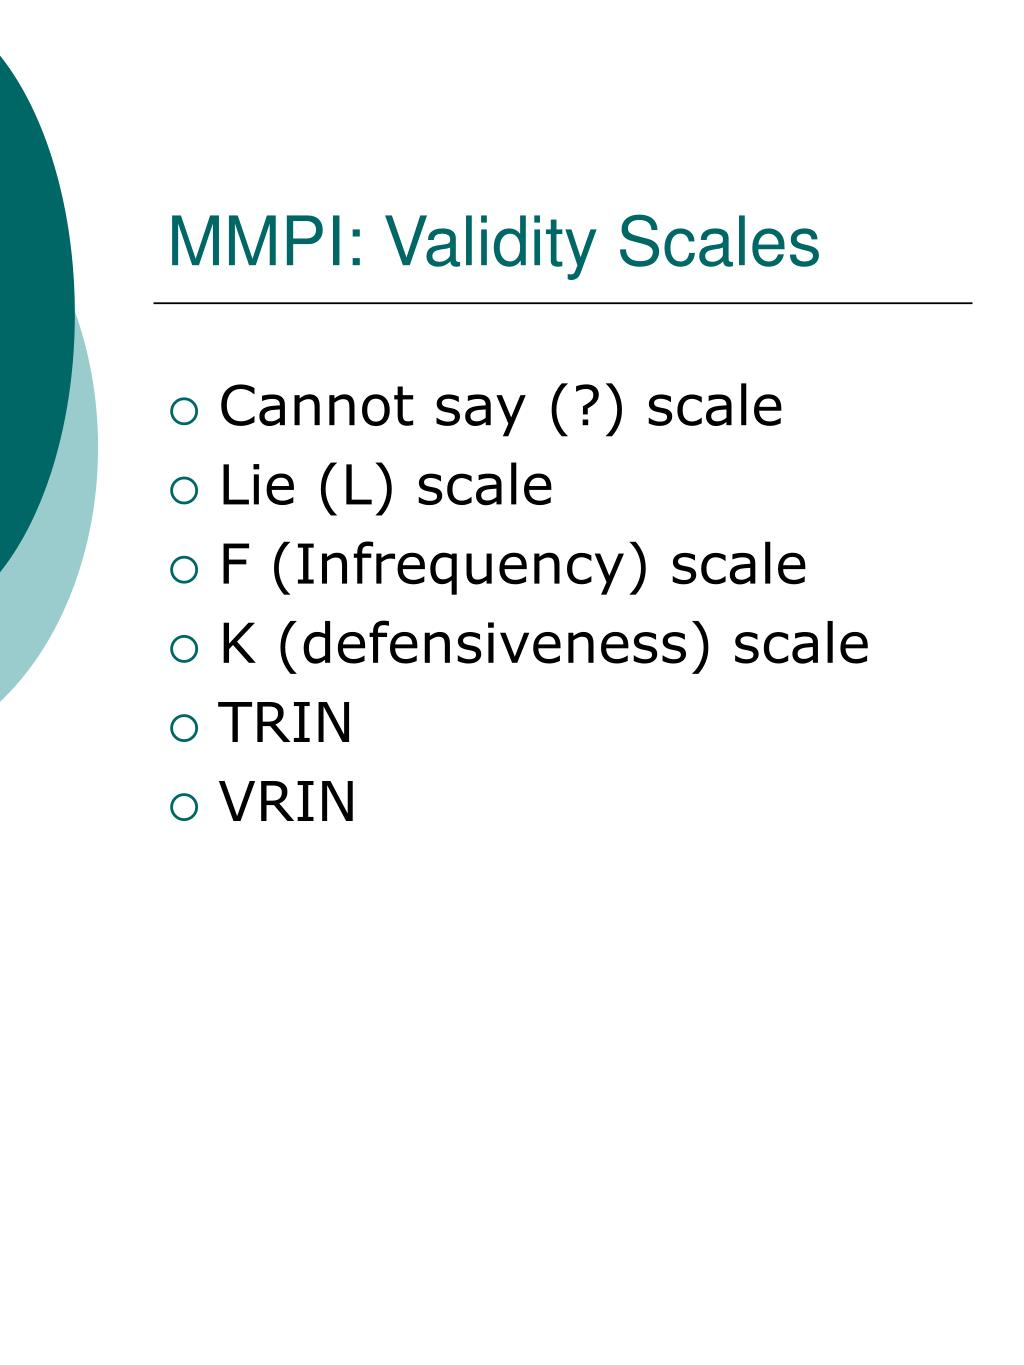 MMPI: Validity Scales